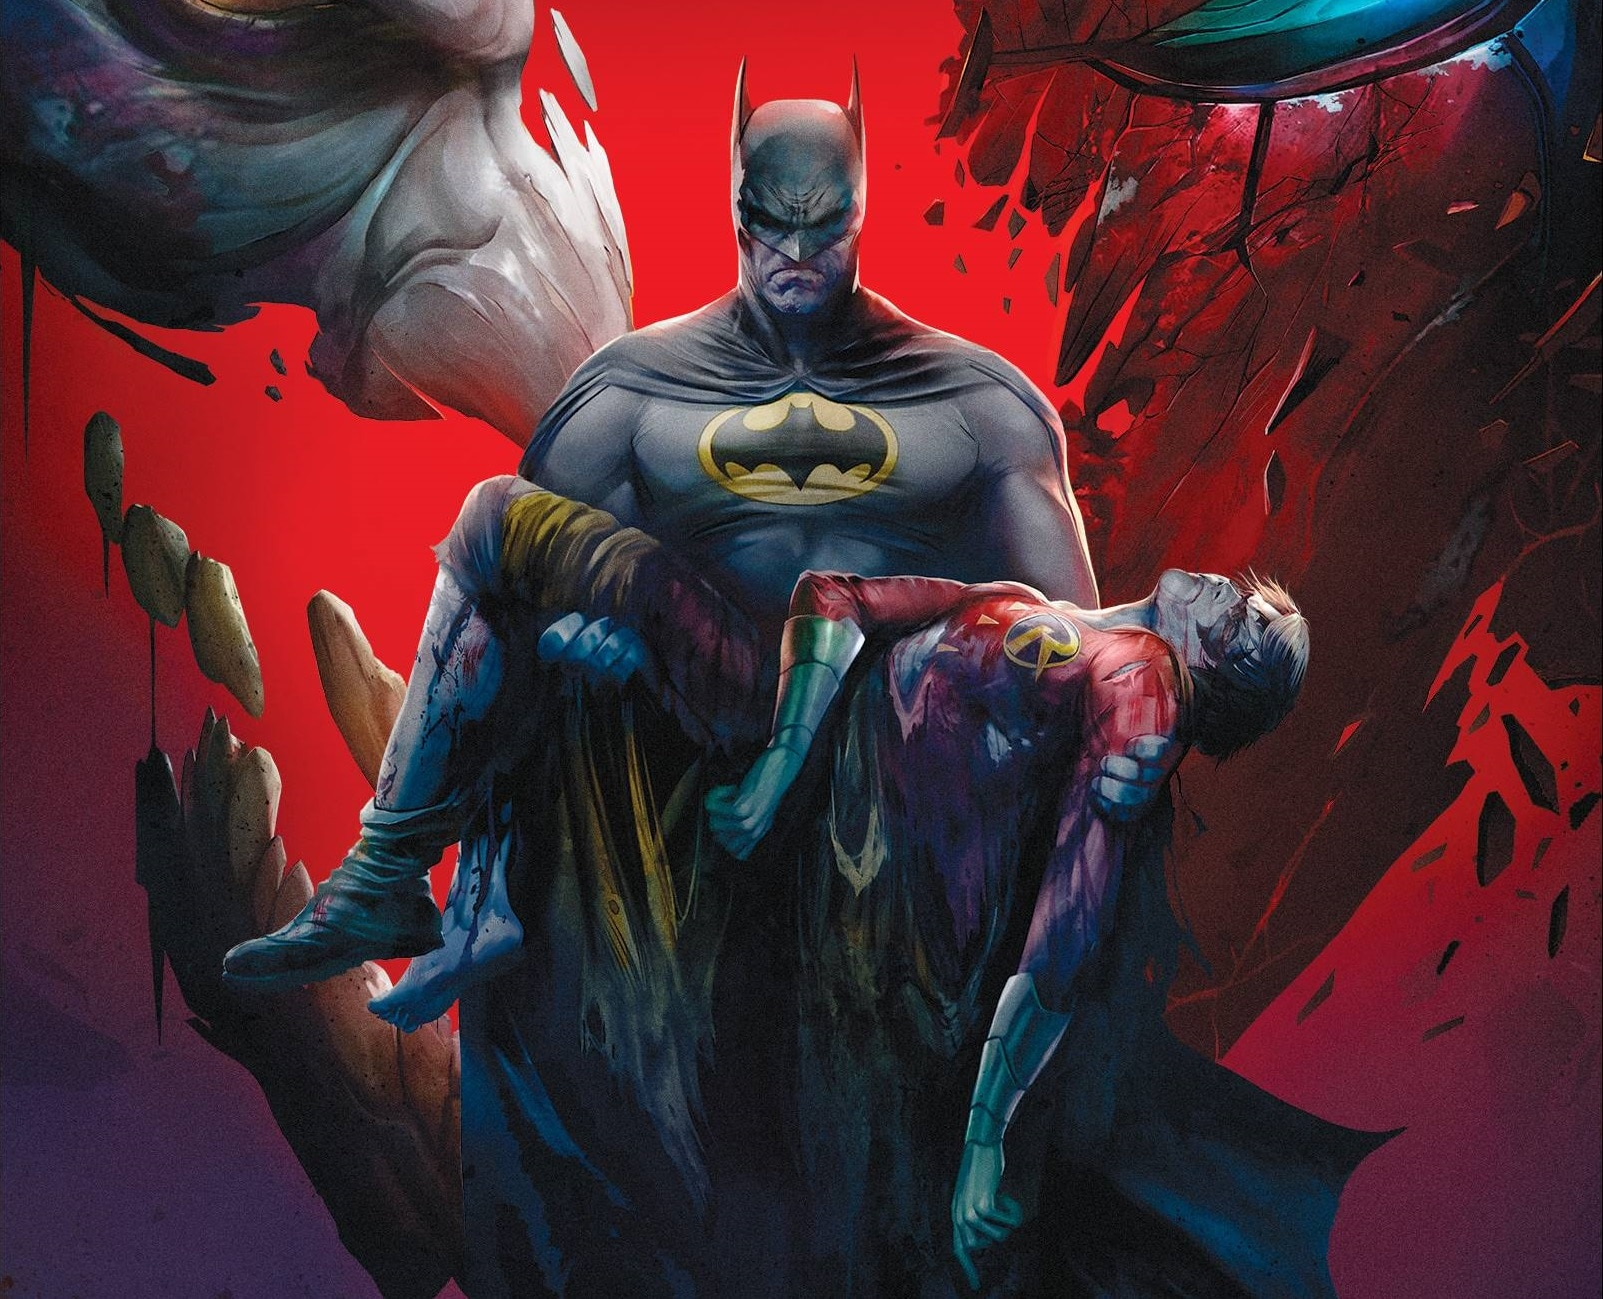 Batman: Death In The Family NYCC Panel Excites And Interacts